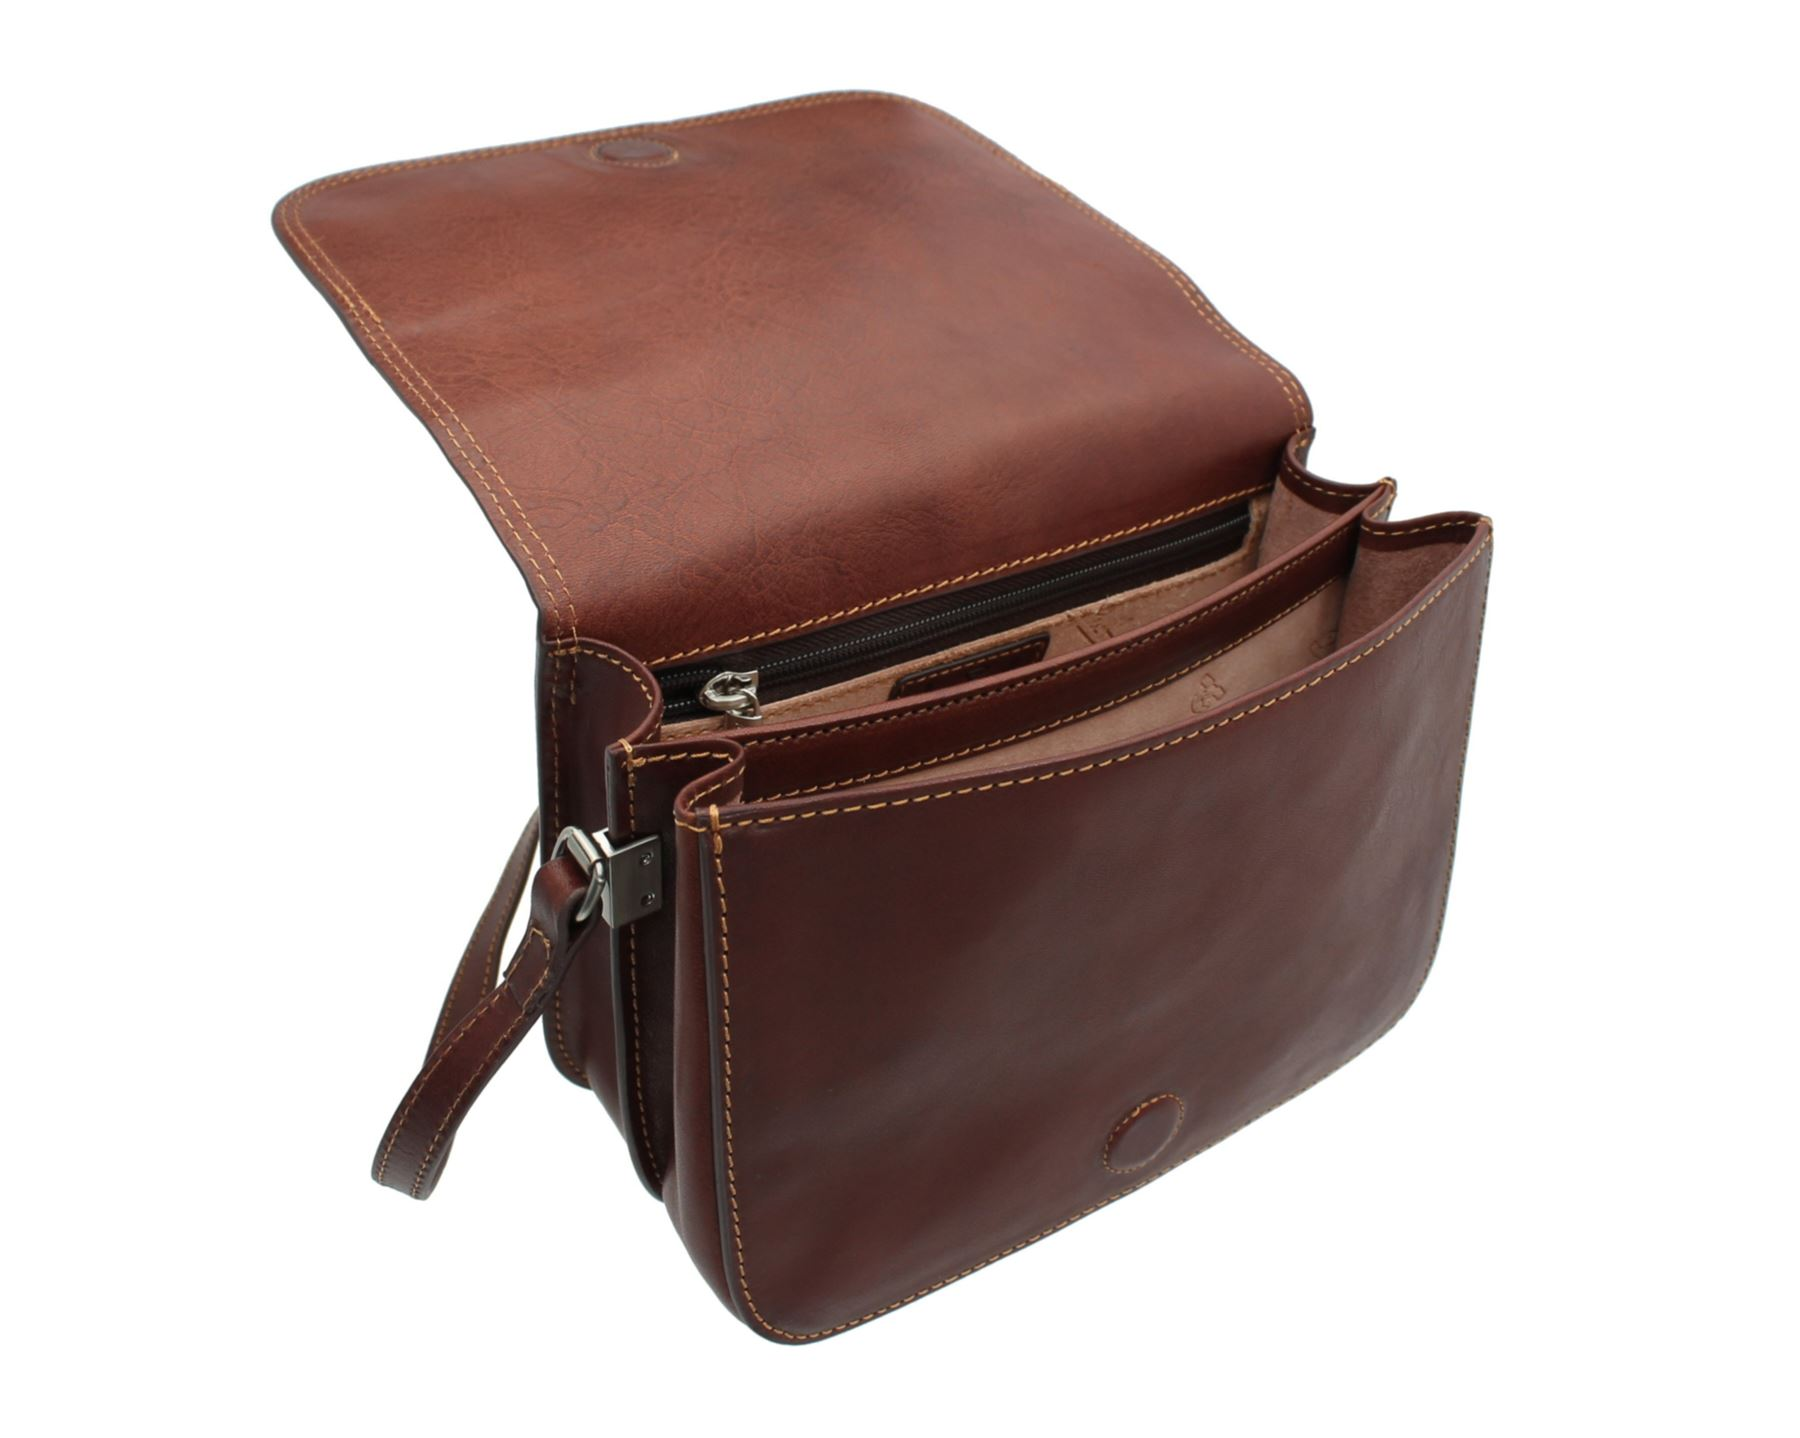 50a7120b93 Tony Perotti Full Grain Leather Messenger/shoulder Bag 1818 1 Brown ...